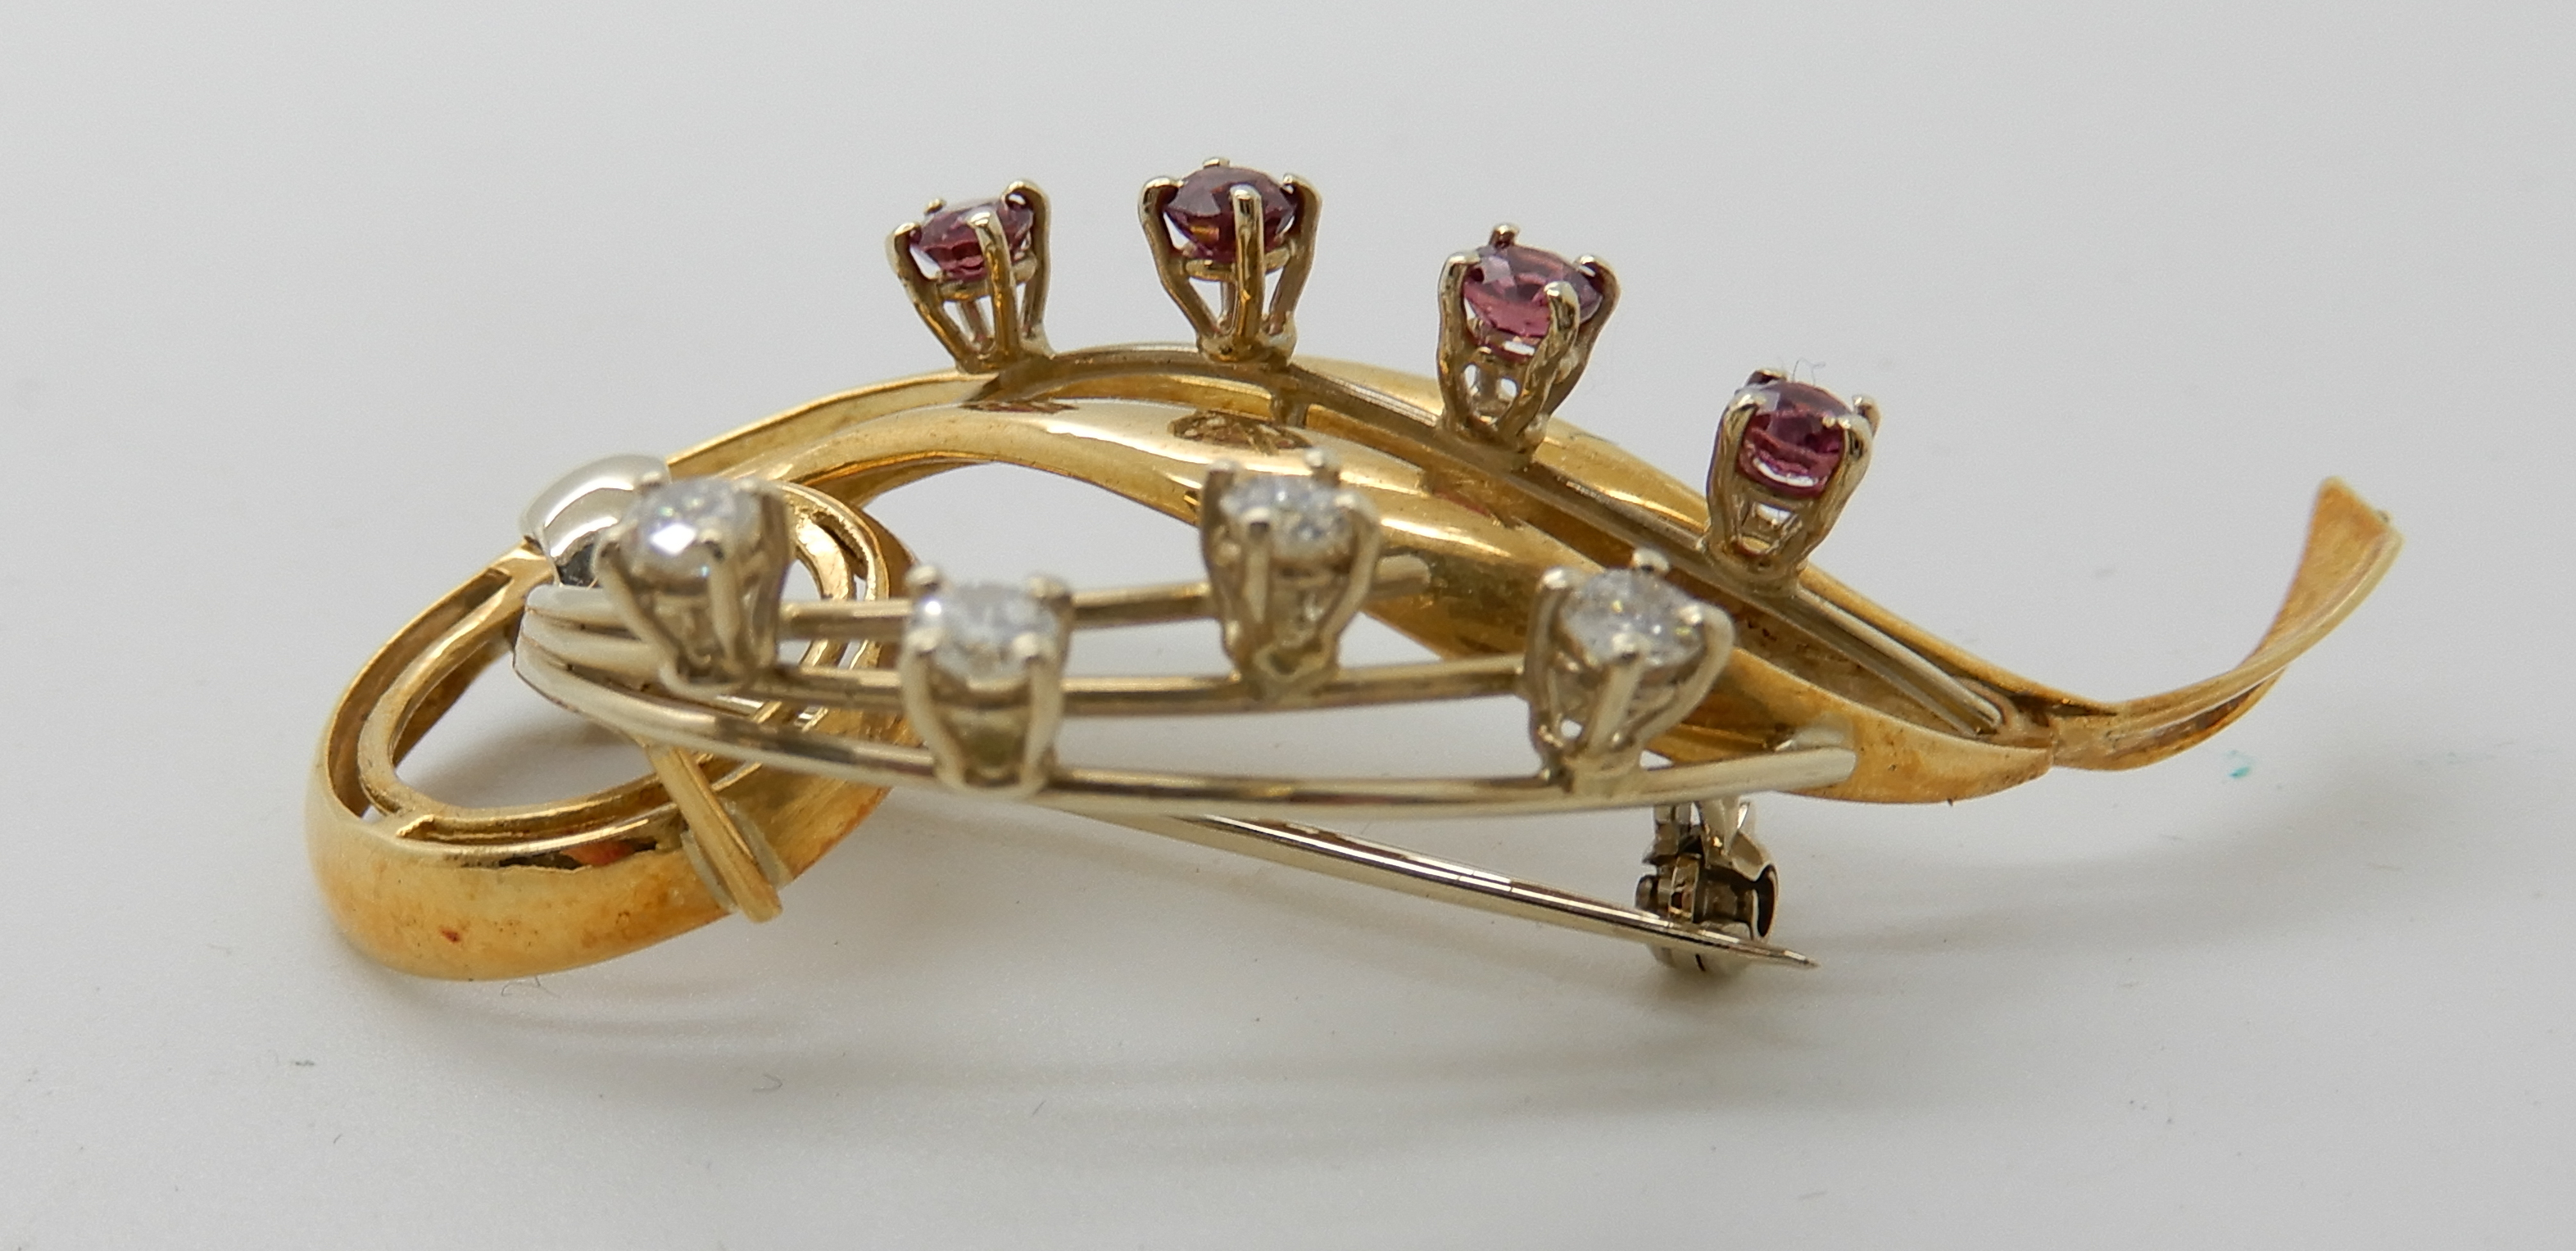 Lot 35 - An 18ct gold ruby and diamond brooch, diamond content estimated approx 0.34cts, length 5.2cm, weight